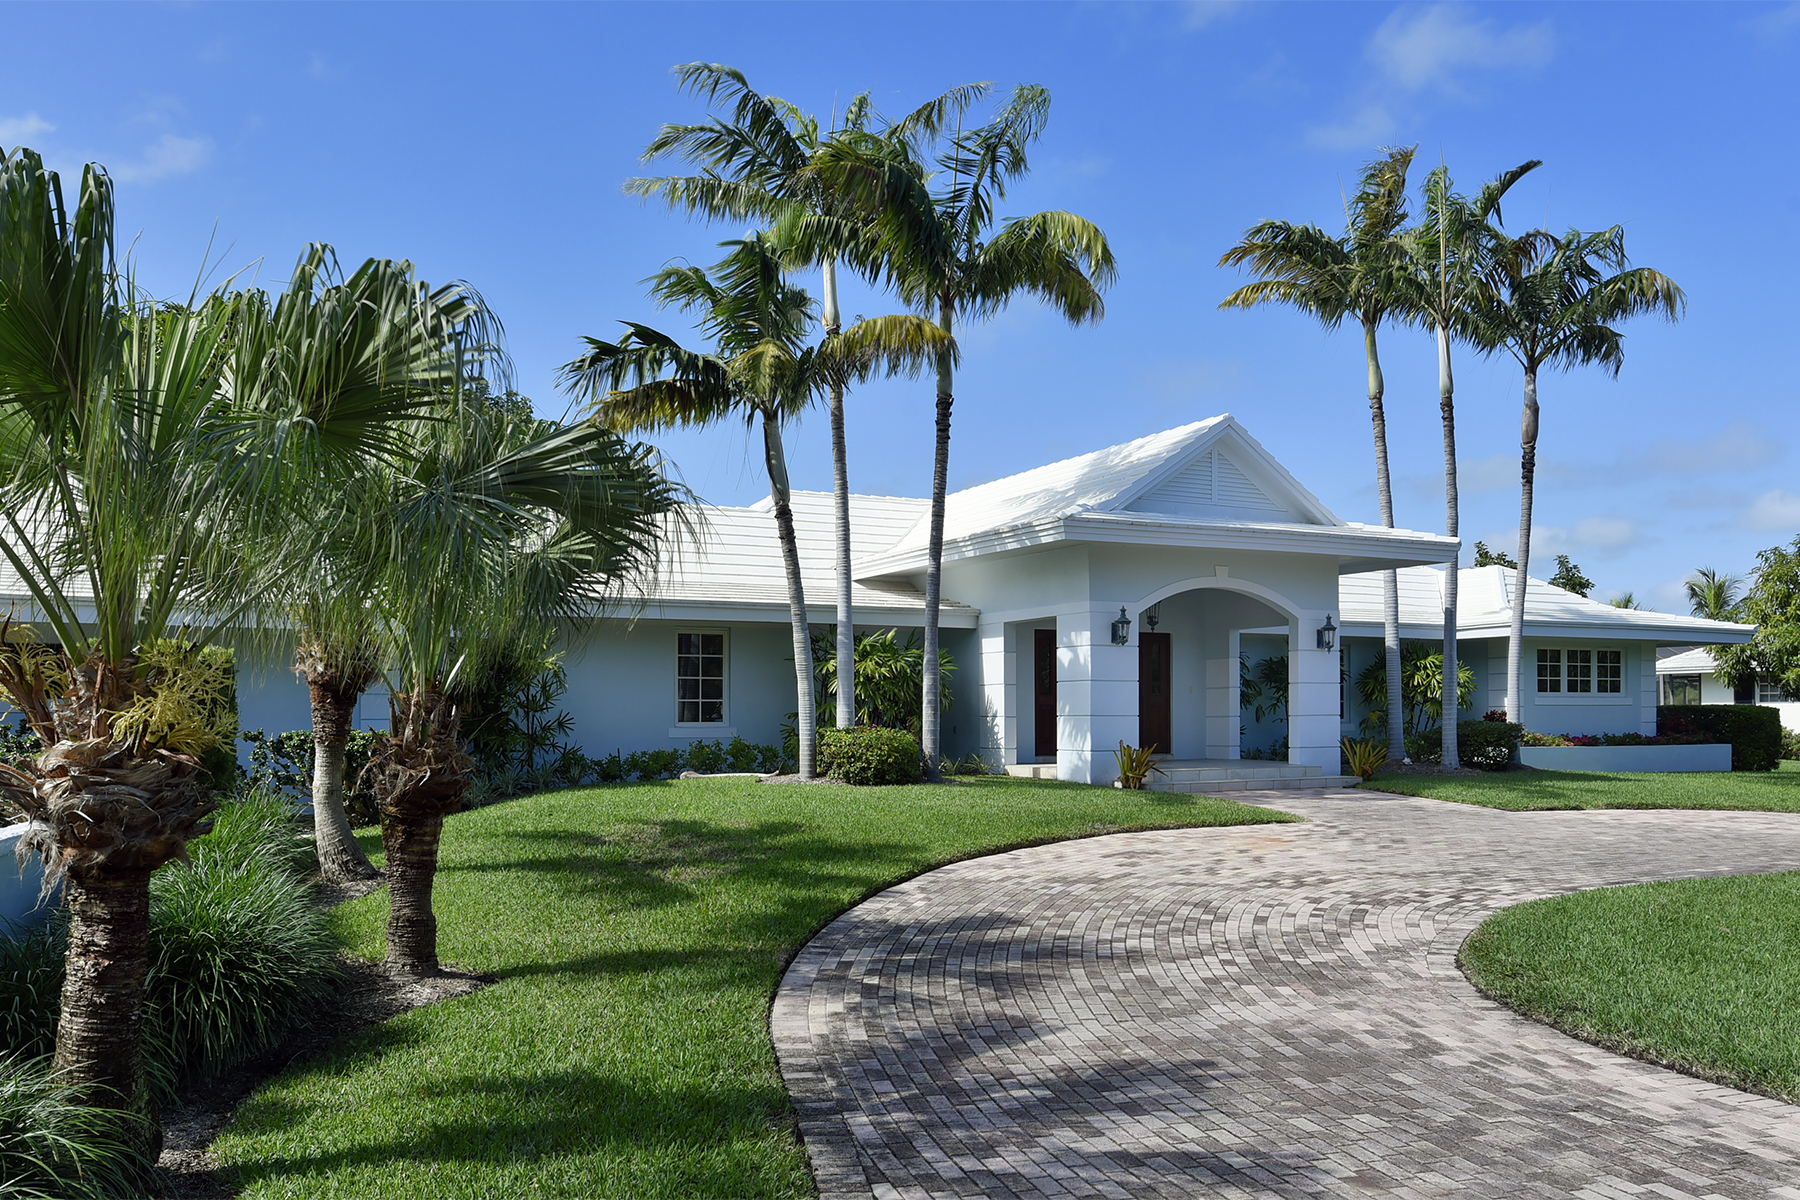 Maison unifamiliale pour l Vente à Charming Waterfront Home at Ocean Reef 15 Sunset Cay Road Ocean Reef Community, Key Largo, Florida, 33037 États-Unis